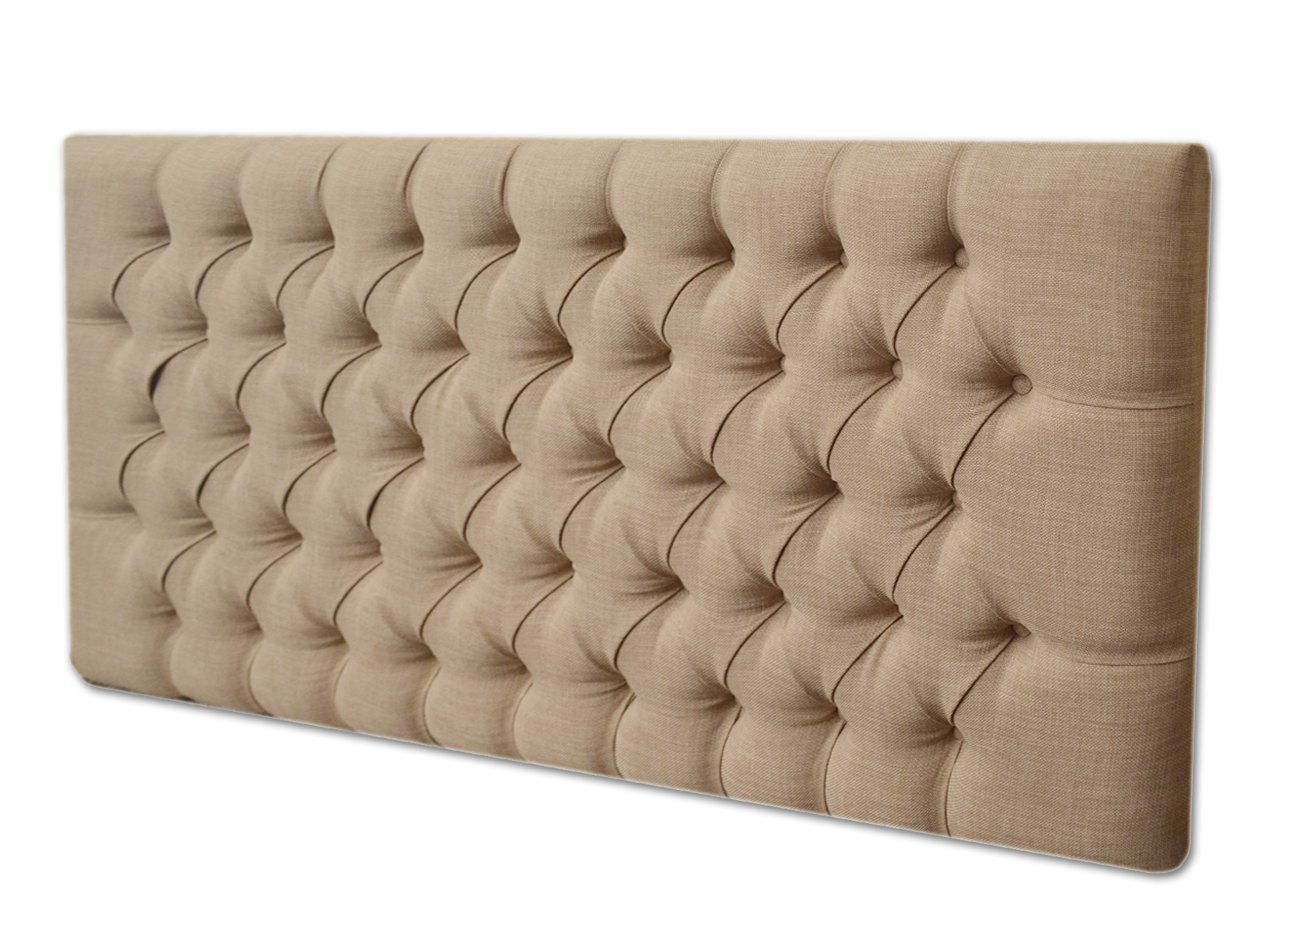 2FT6,3FT,4FT,4FT6,5FT DESIGNER NEW STYLE FABRIC MATCHING BUTTONS HEADBOARD (3FT SINGLE, CREAM CHENILLE)